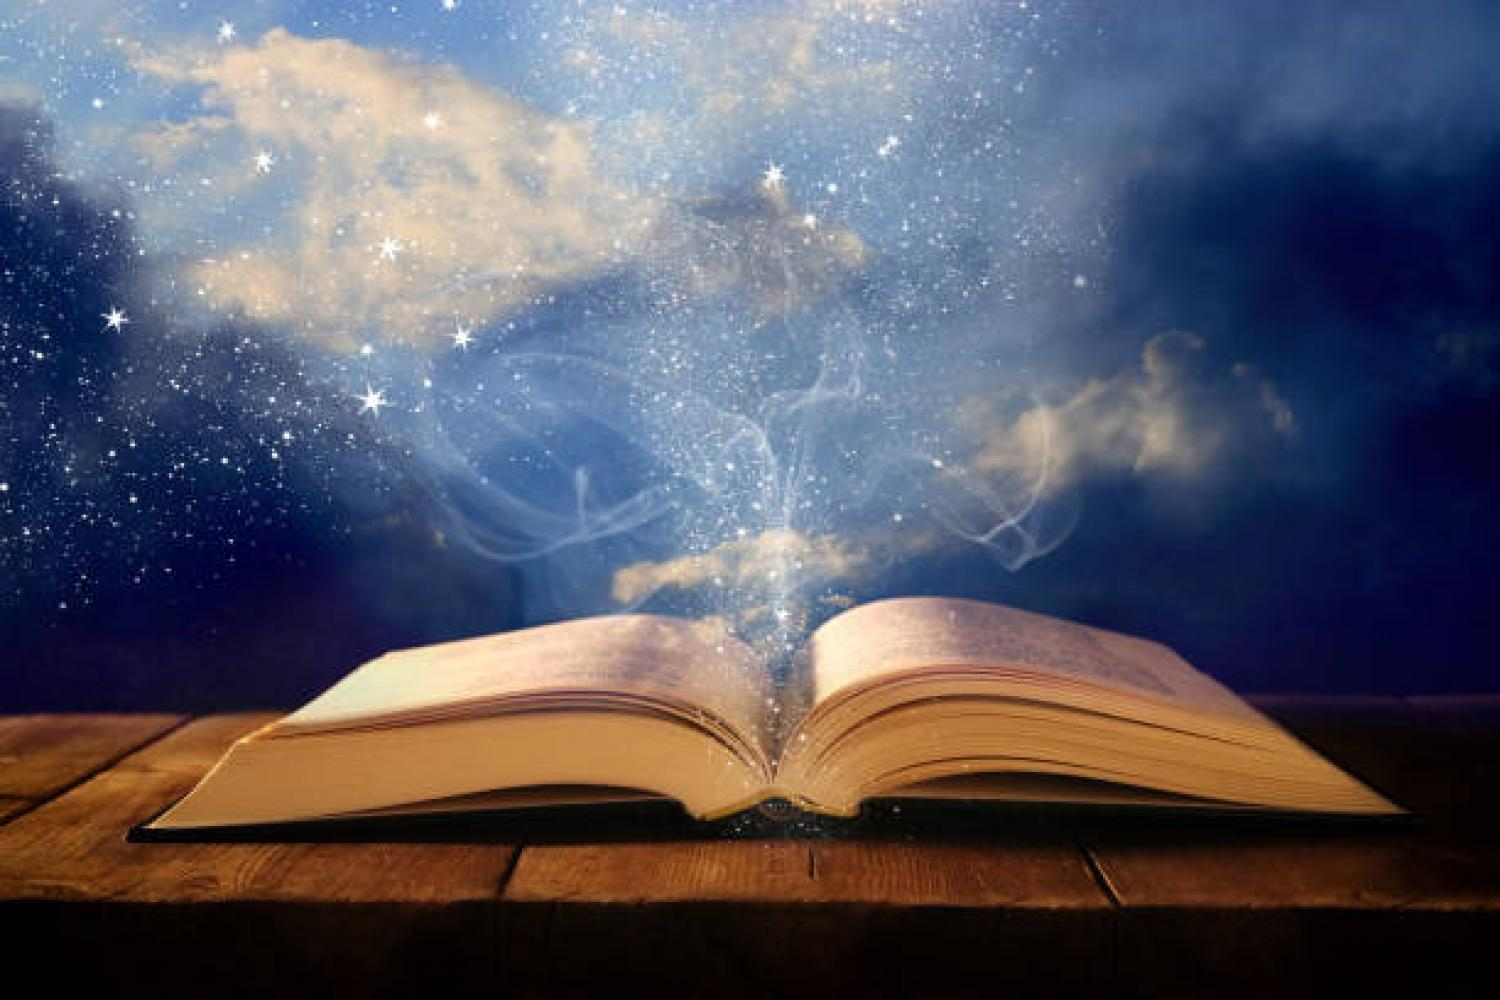 Image of book with sparkles